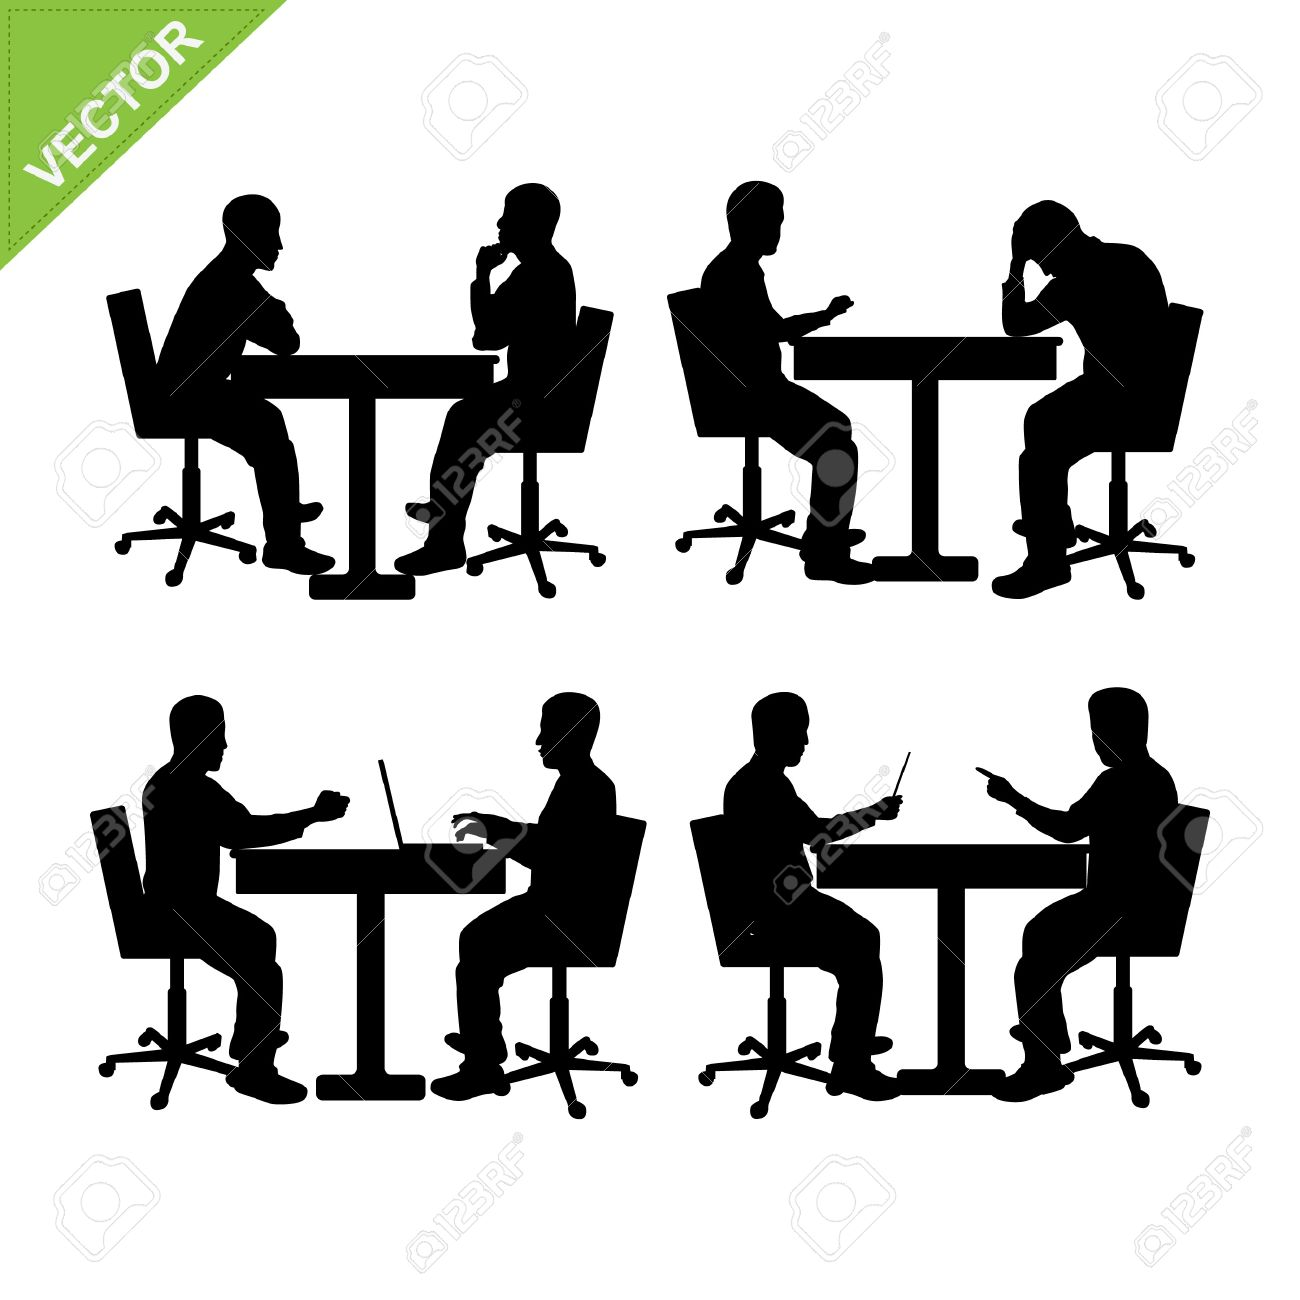 Business Man Meeting Silhouette Vector Royalty Free Cliparts ... for Business People Silhouette Png  117dqh